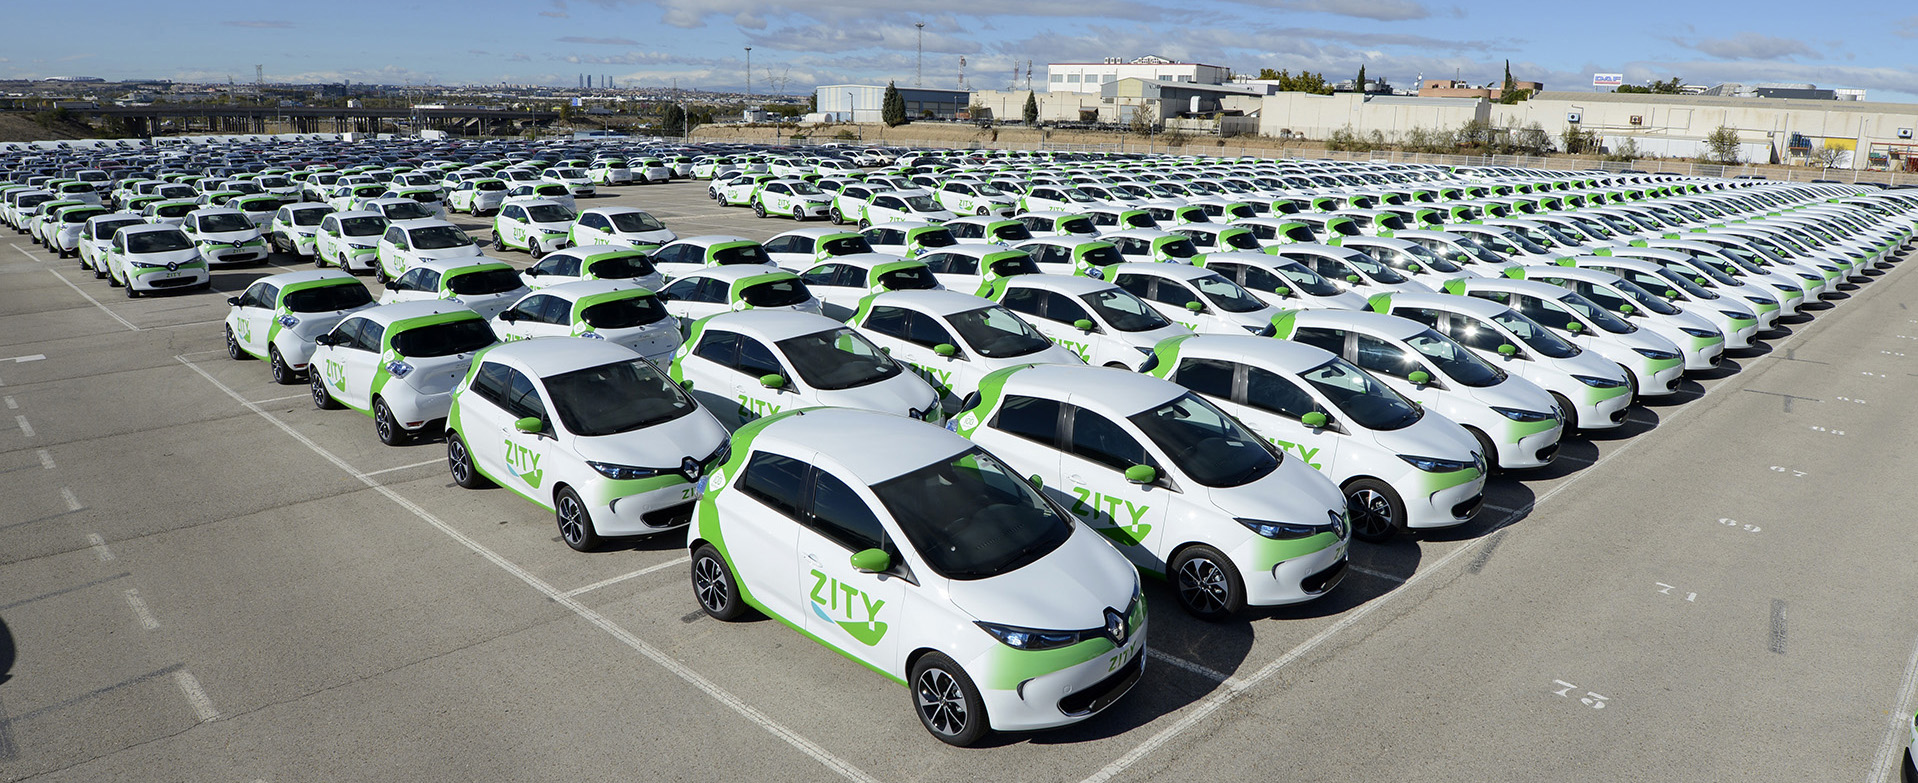 500 Renault Zoe on streets of Madrid with ZITY car sharing scheme ...